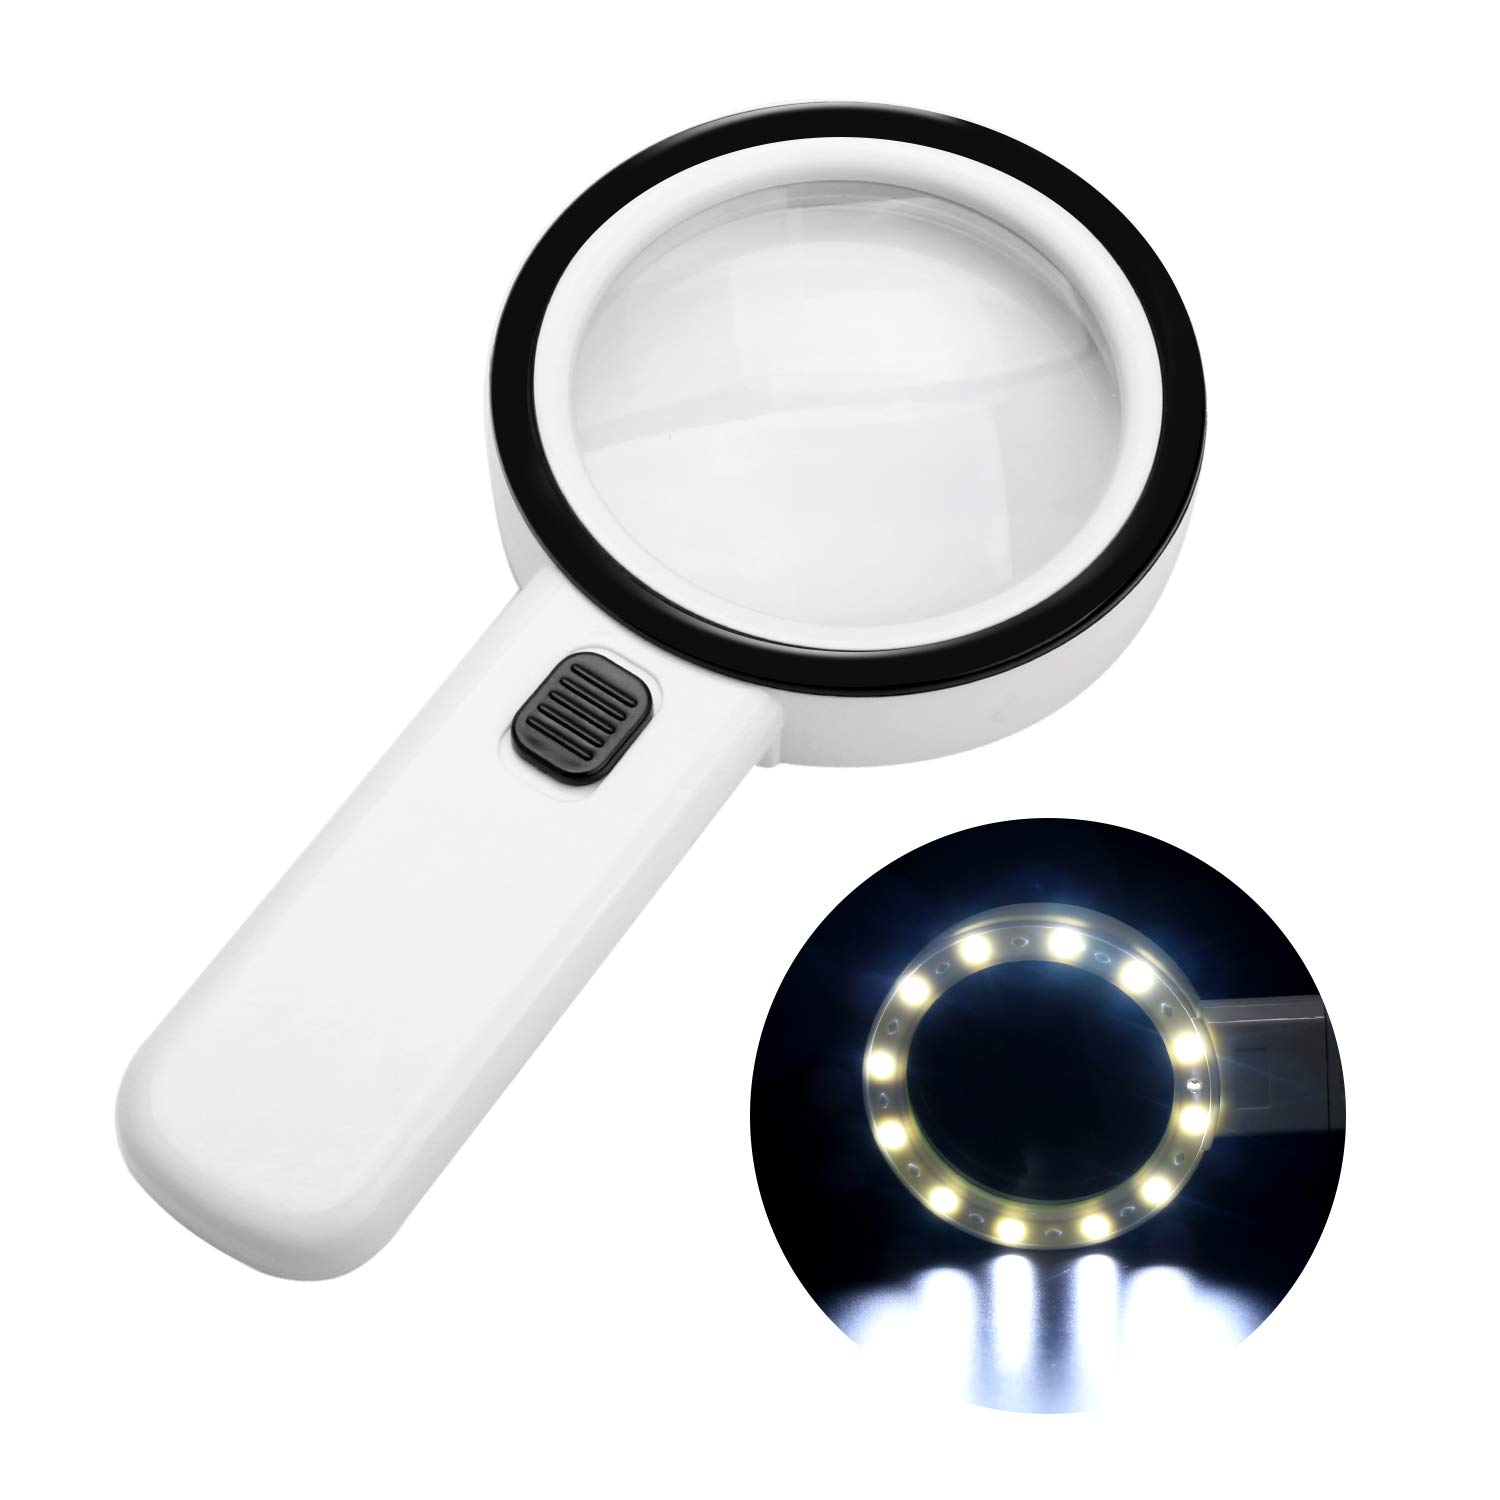 30X High Power Handheld Magnifying Glass, Double Glass Lens Jumbo illuminated Magnifier Glasses with Led Light and UV Light, for Reading, Soldering, Inspection, Coins, Jewelry, perfect for Macular Deg